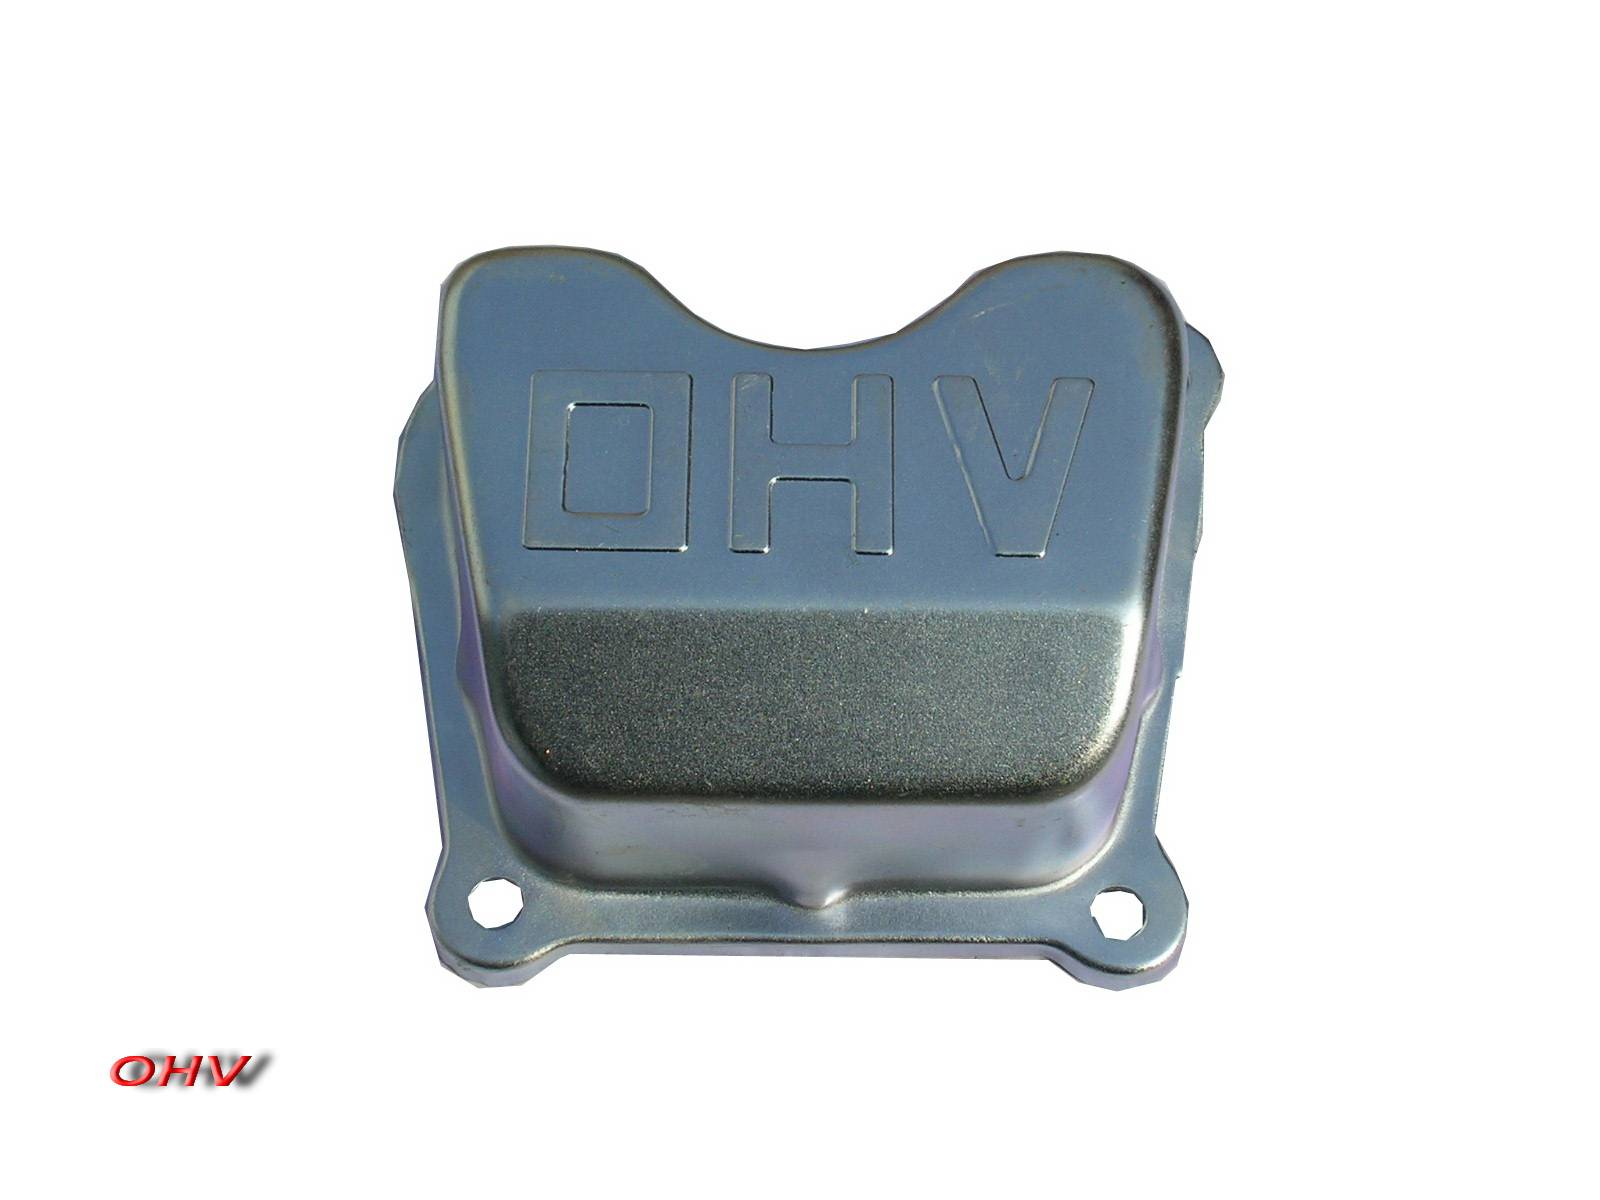 OHV (Generator's spare parts)